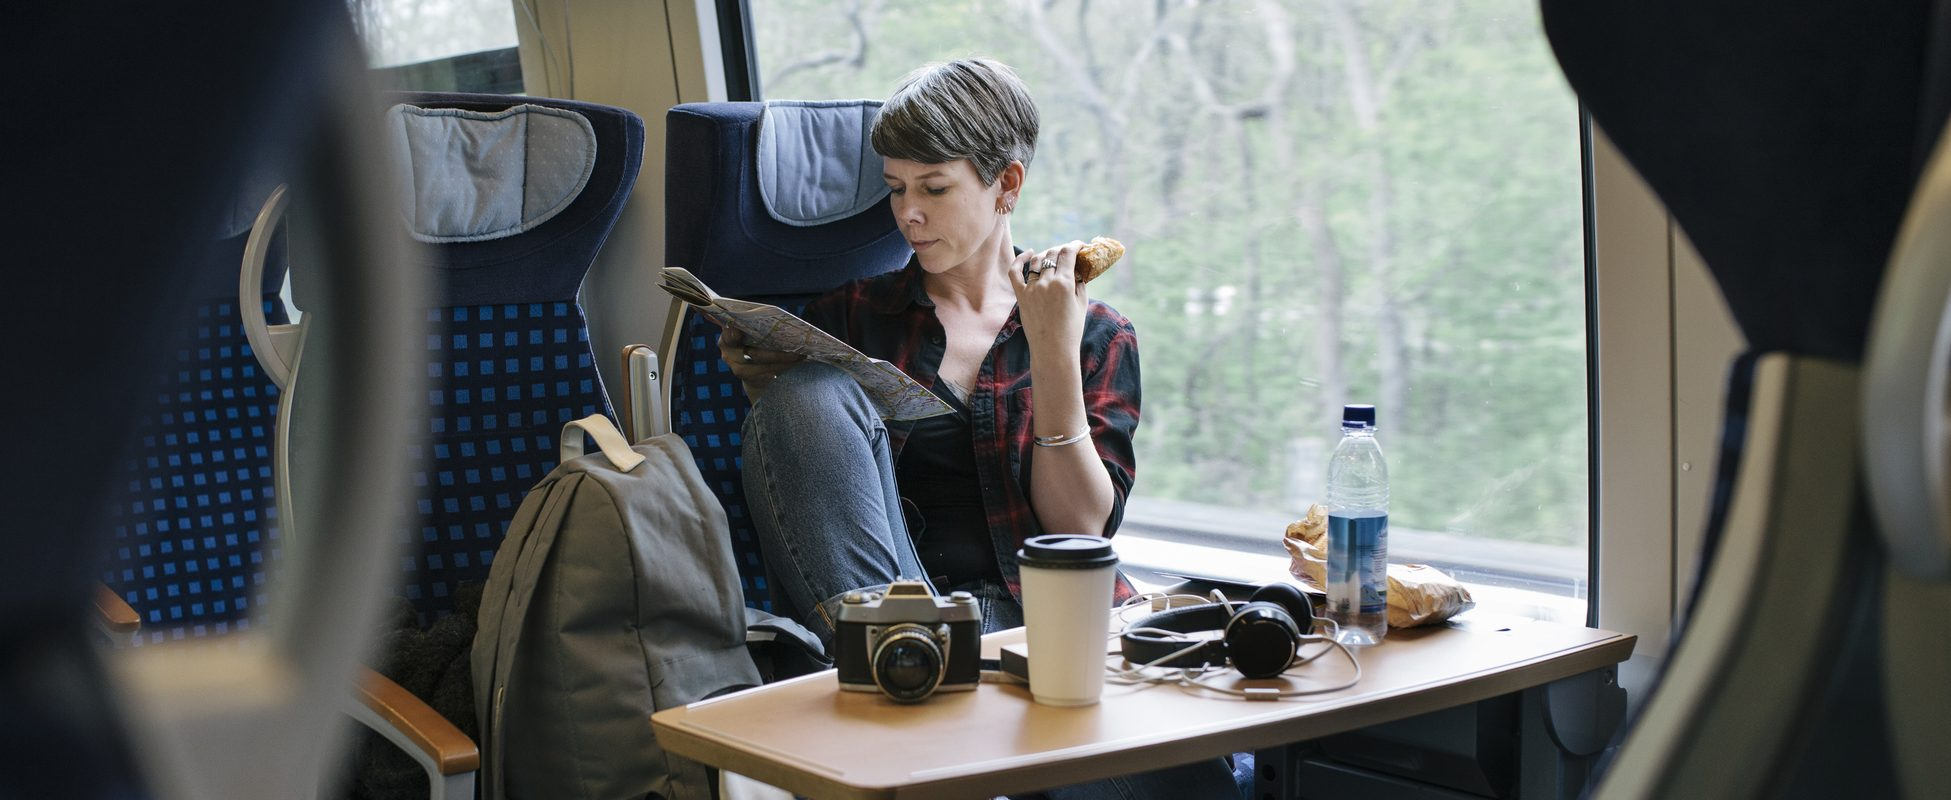 Woman travelling by train enjoys her trip while saving money